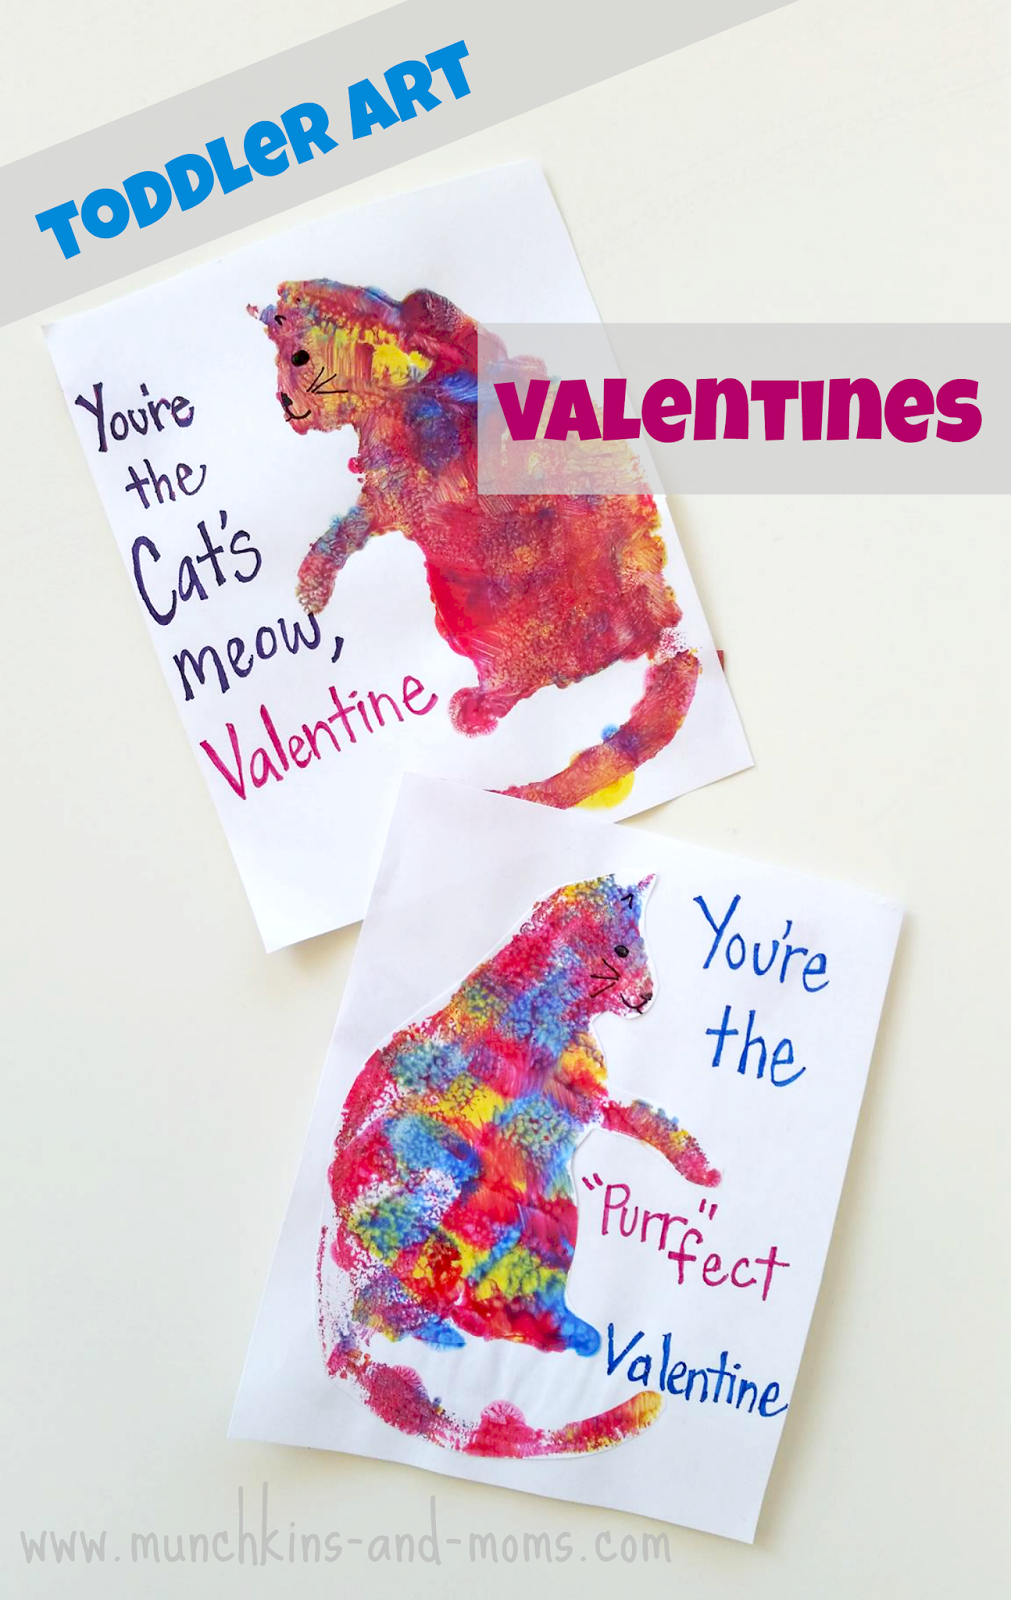 Cat Print Valentine Cards Munchkins and Moms – Toddler Valentine Cards